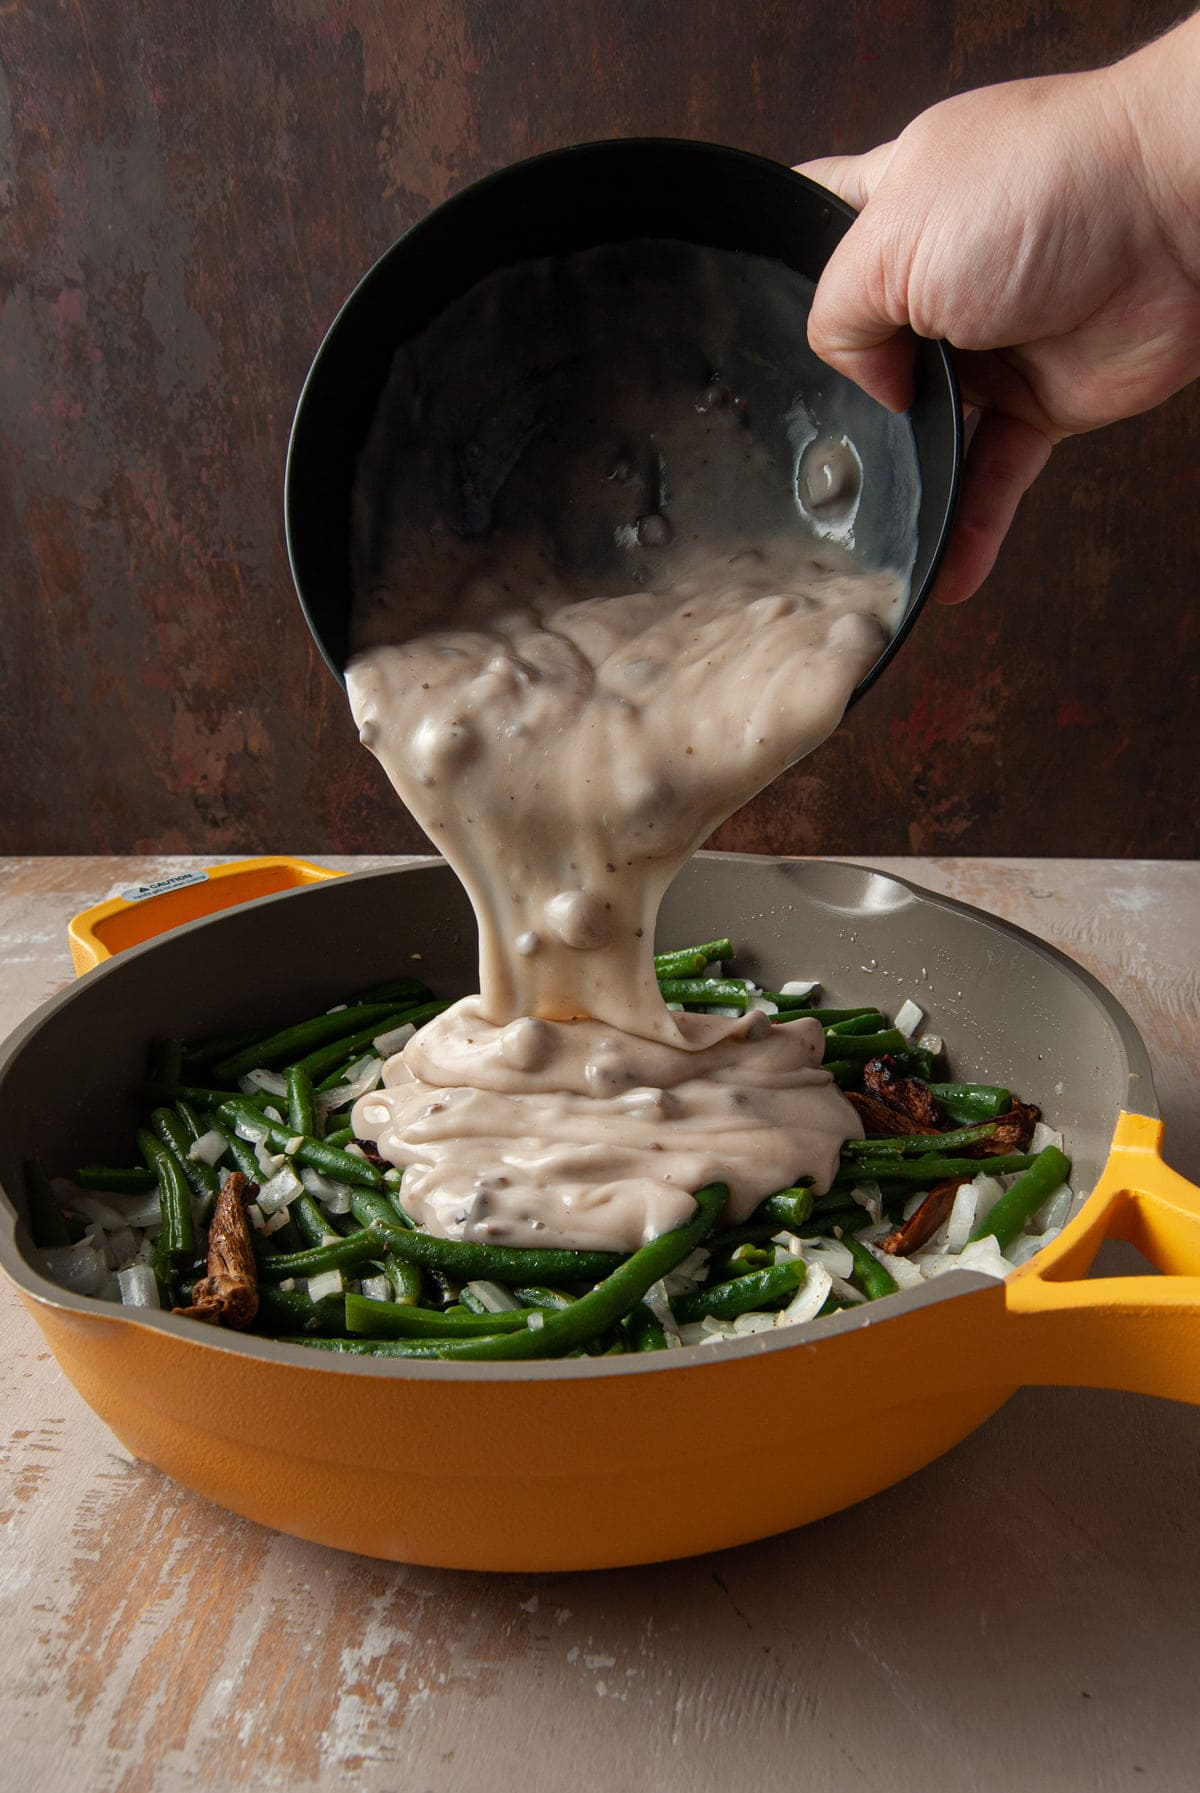 pouring cream of mushroom soup over vegetables cooking in pan